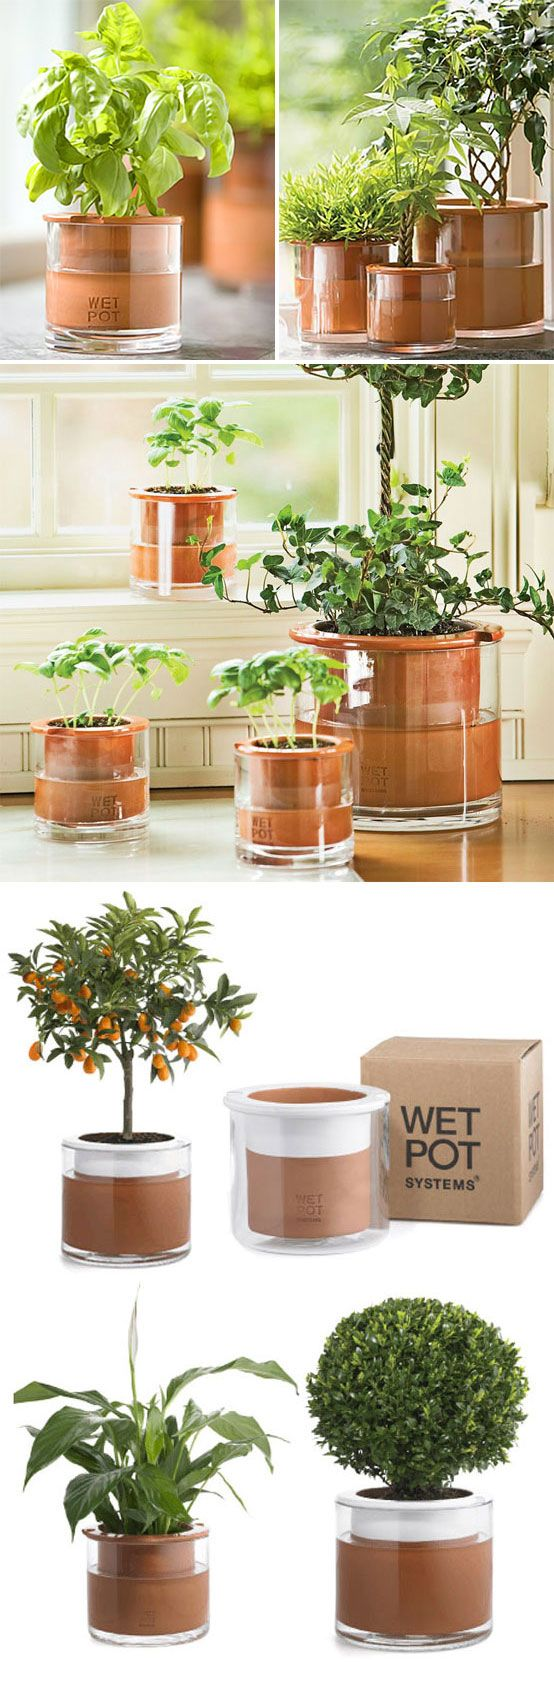 HACKABLE :: Wet Pots by Wet Pot Systems :: (no longer sold :( waaah!)   gardeners.com :: Swedish self-watering planters. Plant absorbs moisture as needed thru the porus clay inner pot. :: REALLY bummed these aren't being sold anymore, to say the least. So, I tested this with an unglazed terracotta pot (the kind that already have a bumped out lip at the top quarter or so of the pot & put it inside a straight sided glass container from the dollar store. It works!   #selfwateringpot #diyplanter